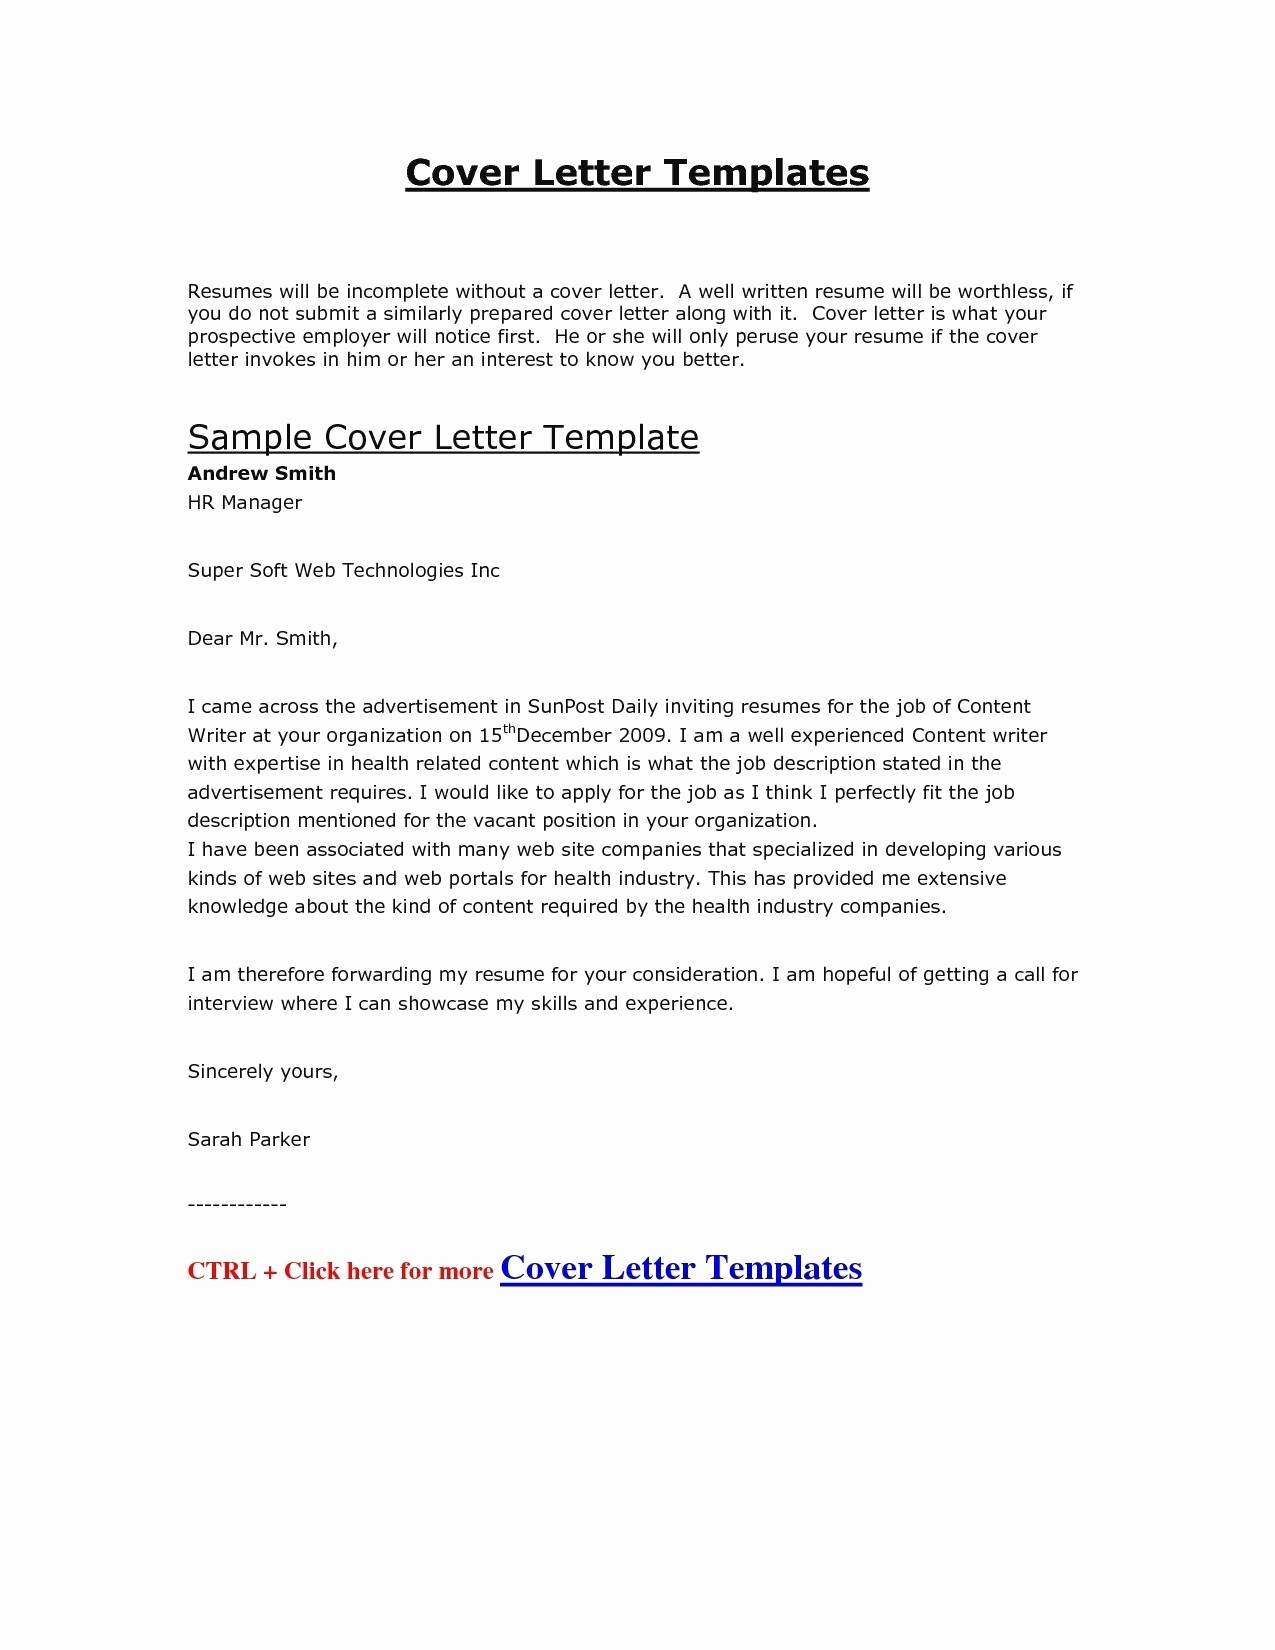 Career Cover Letter Template - Job Application Letter format Template Copy Cover Letter Template Hr